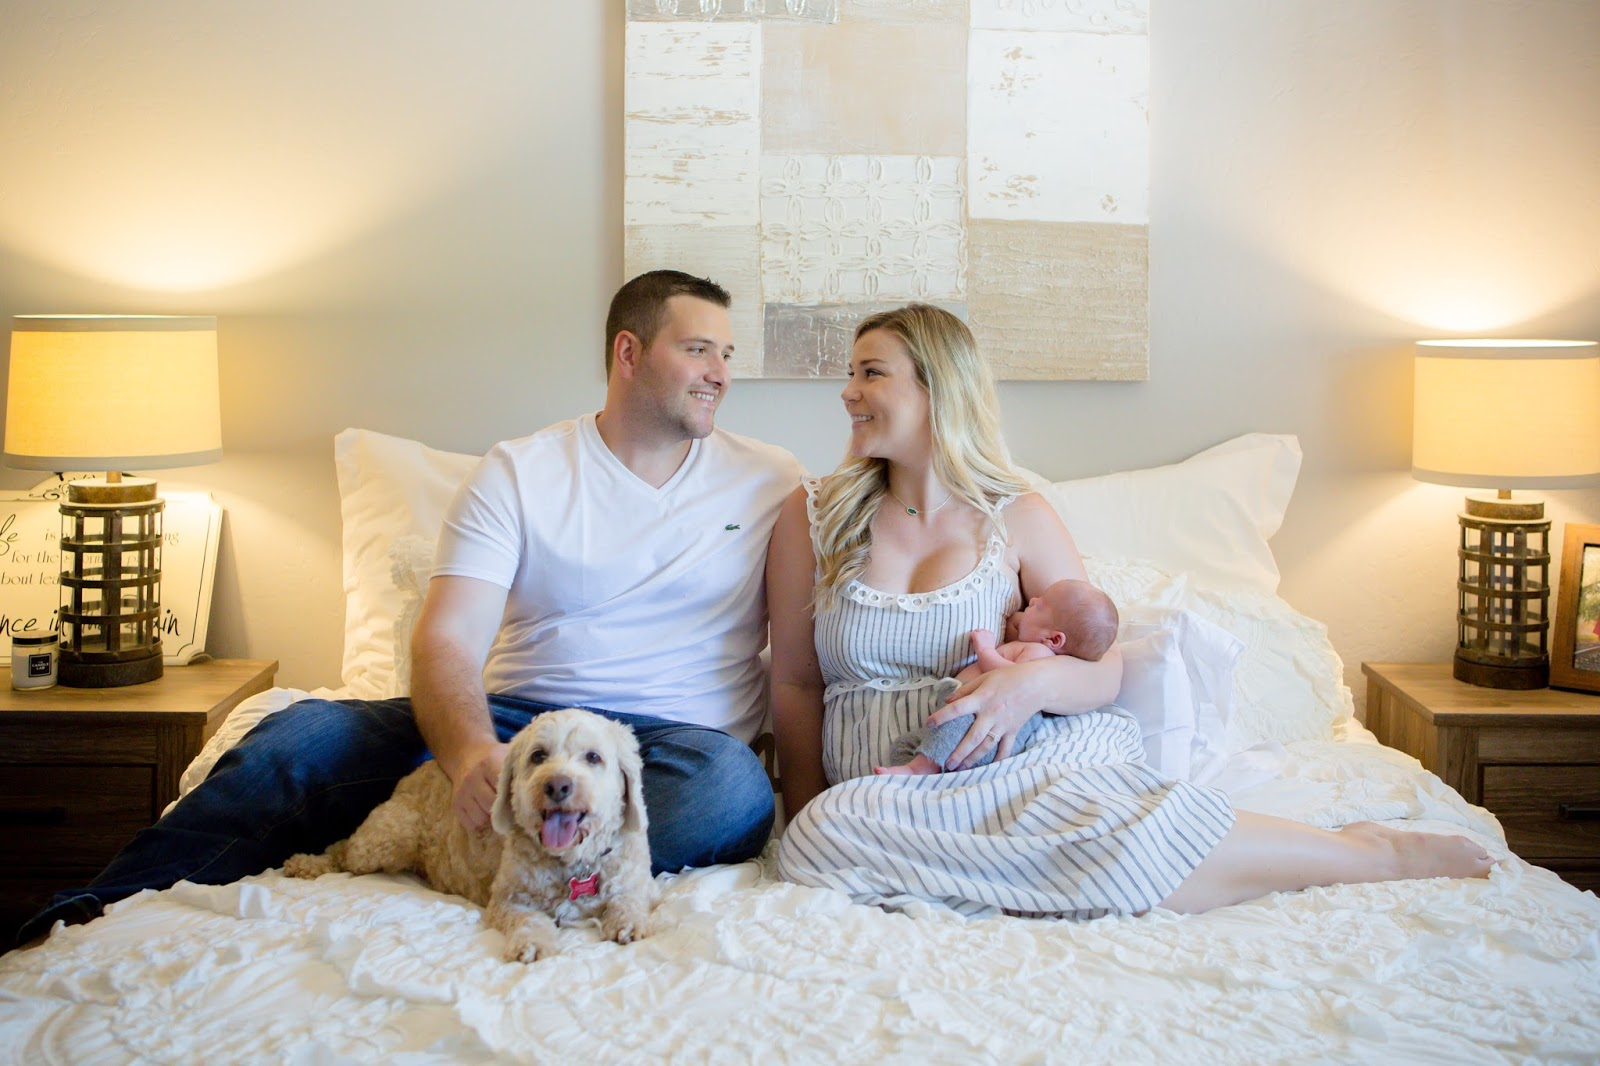 mom, dad, baby and dog on bed